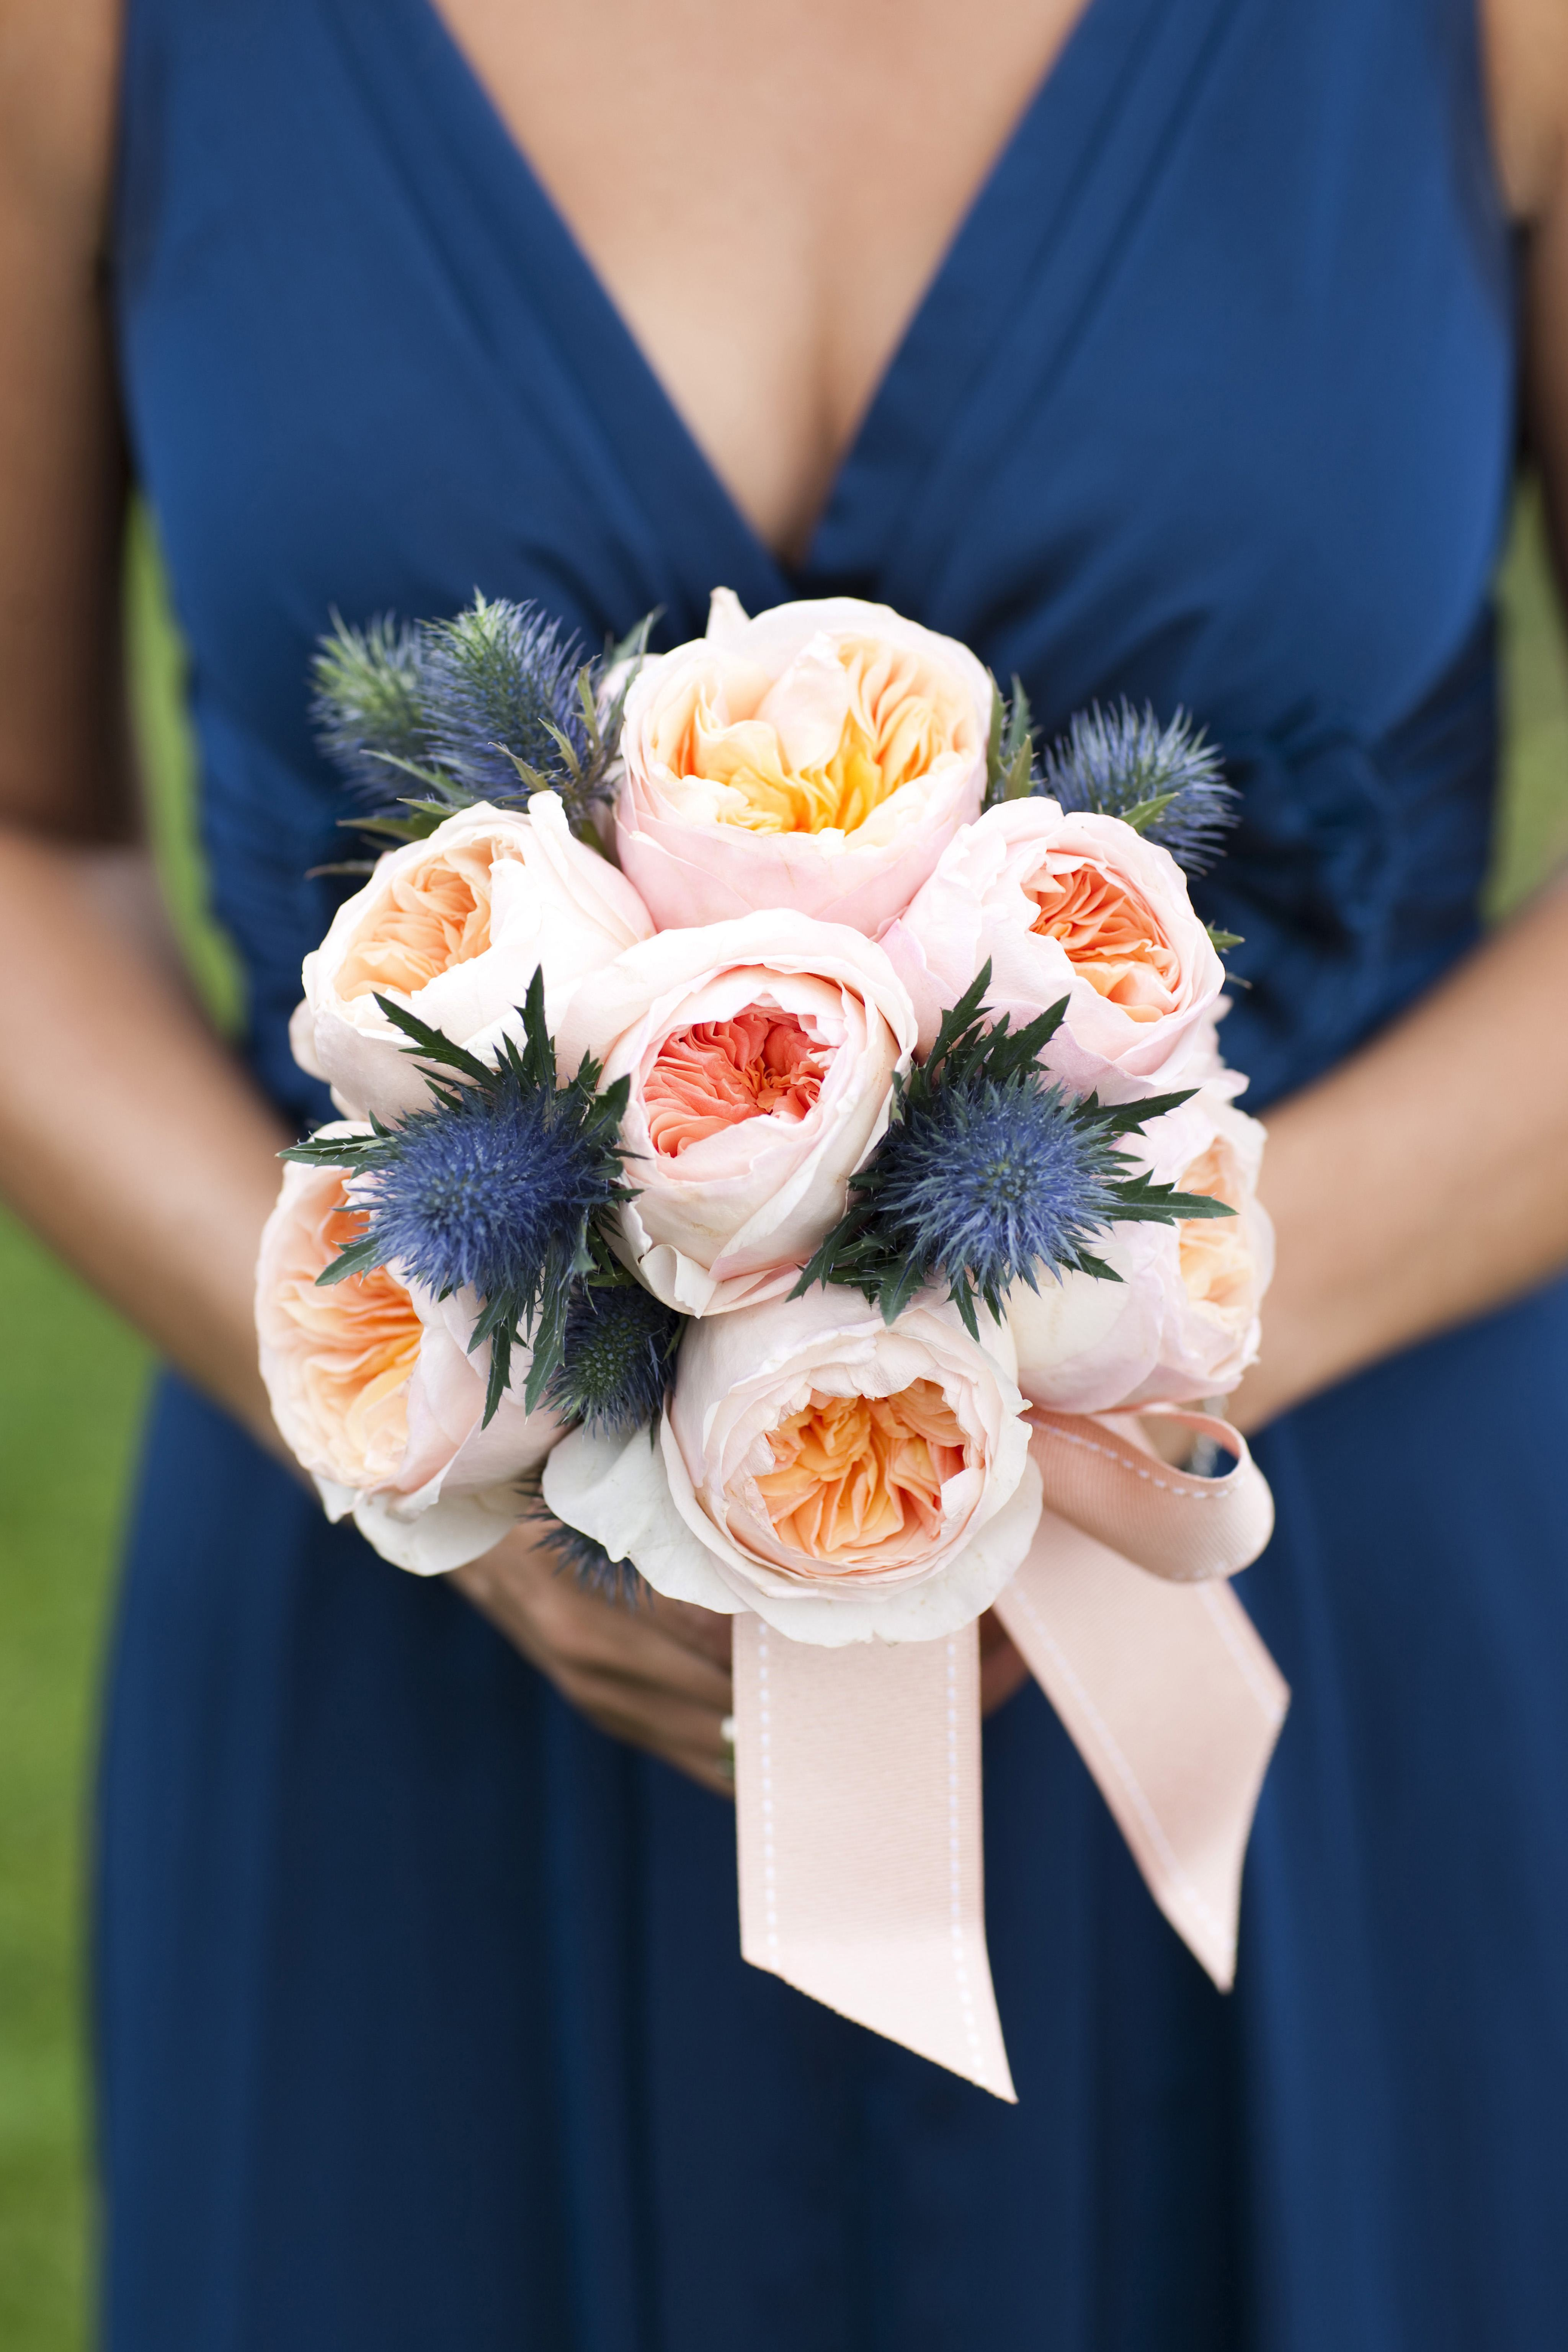 pantone color of the year 2020 classic blue wedding ideas blue thistle in wedding bouquet